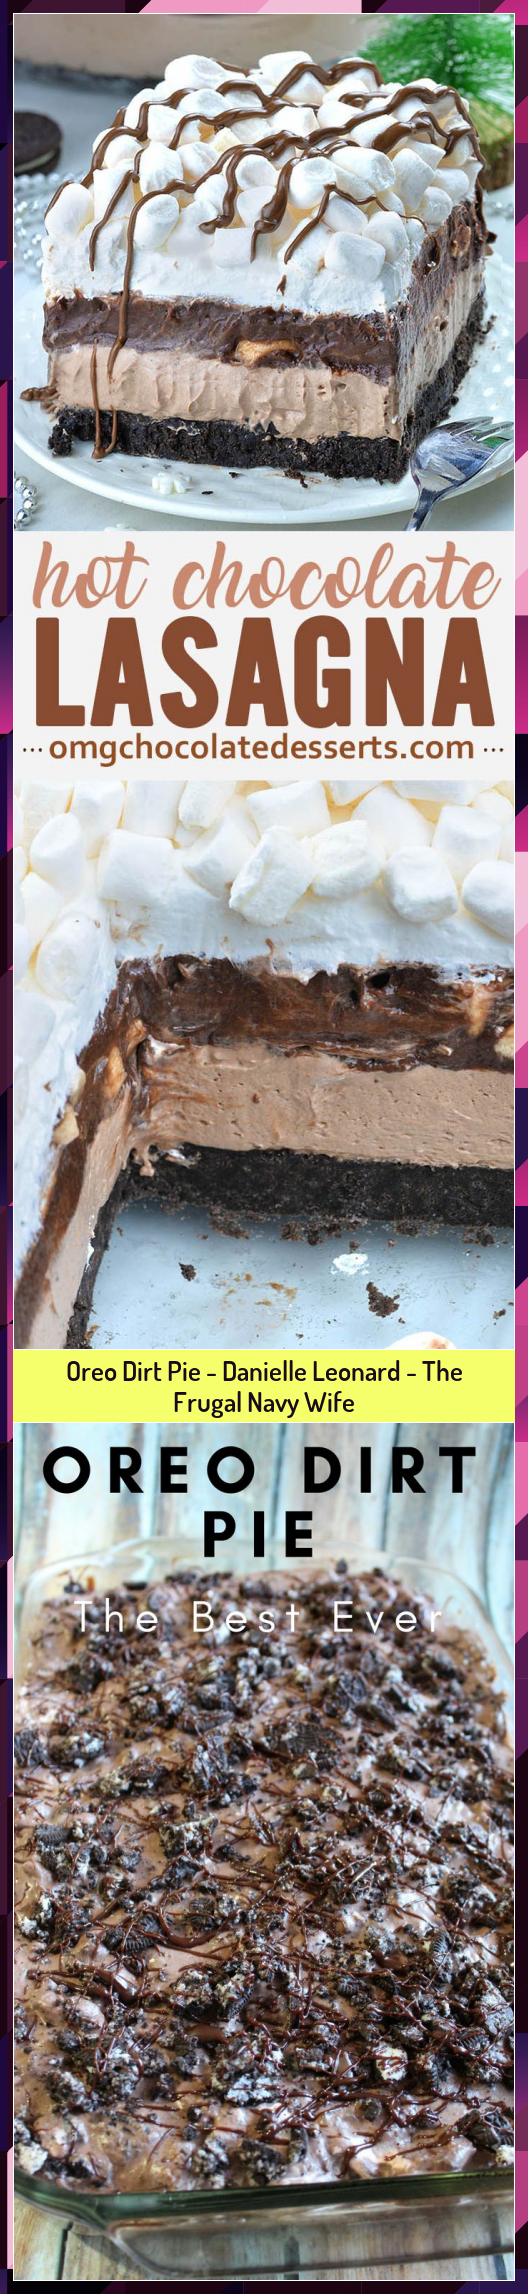 Oreo Dirt Pie  Danielle Leonard  The Frugal Navy Wife